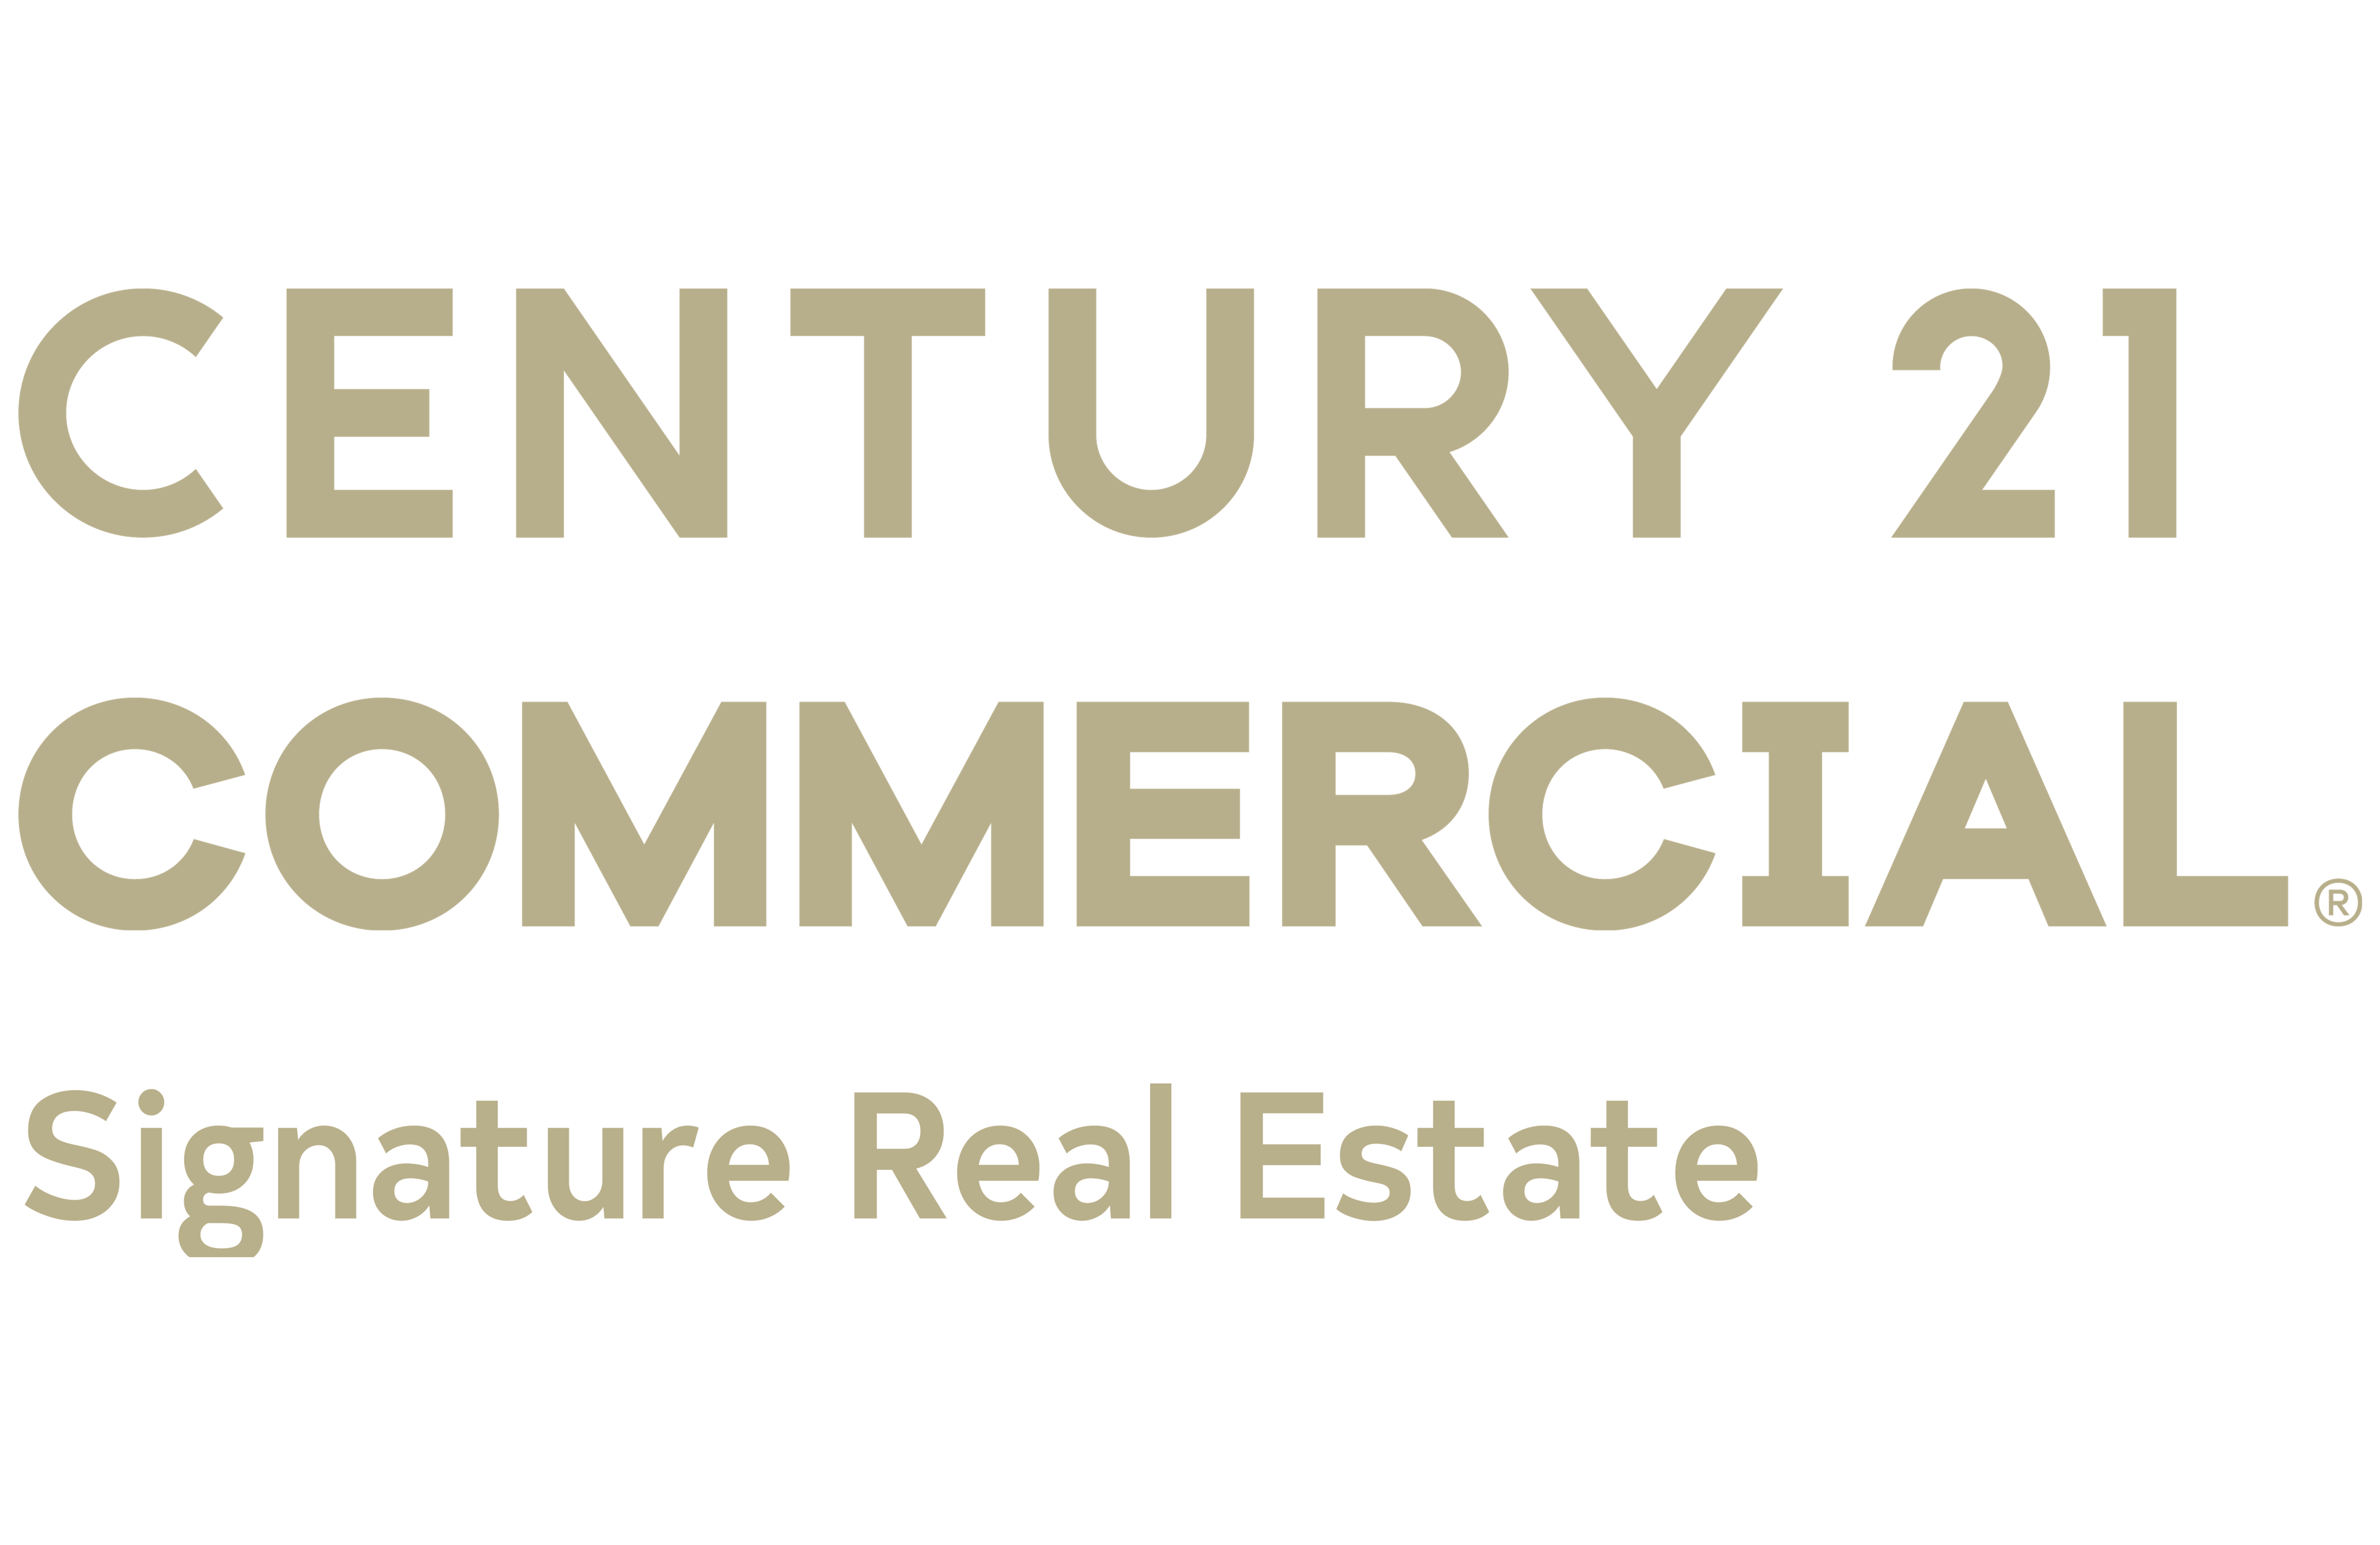 CENTURY 21 Signature Real Estate